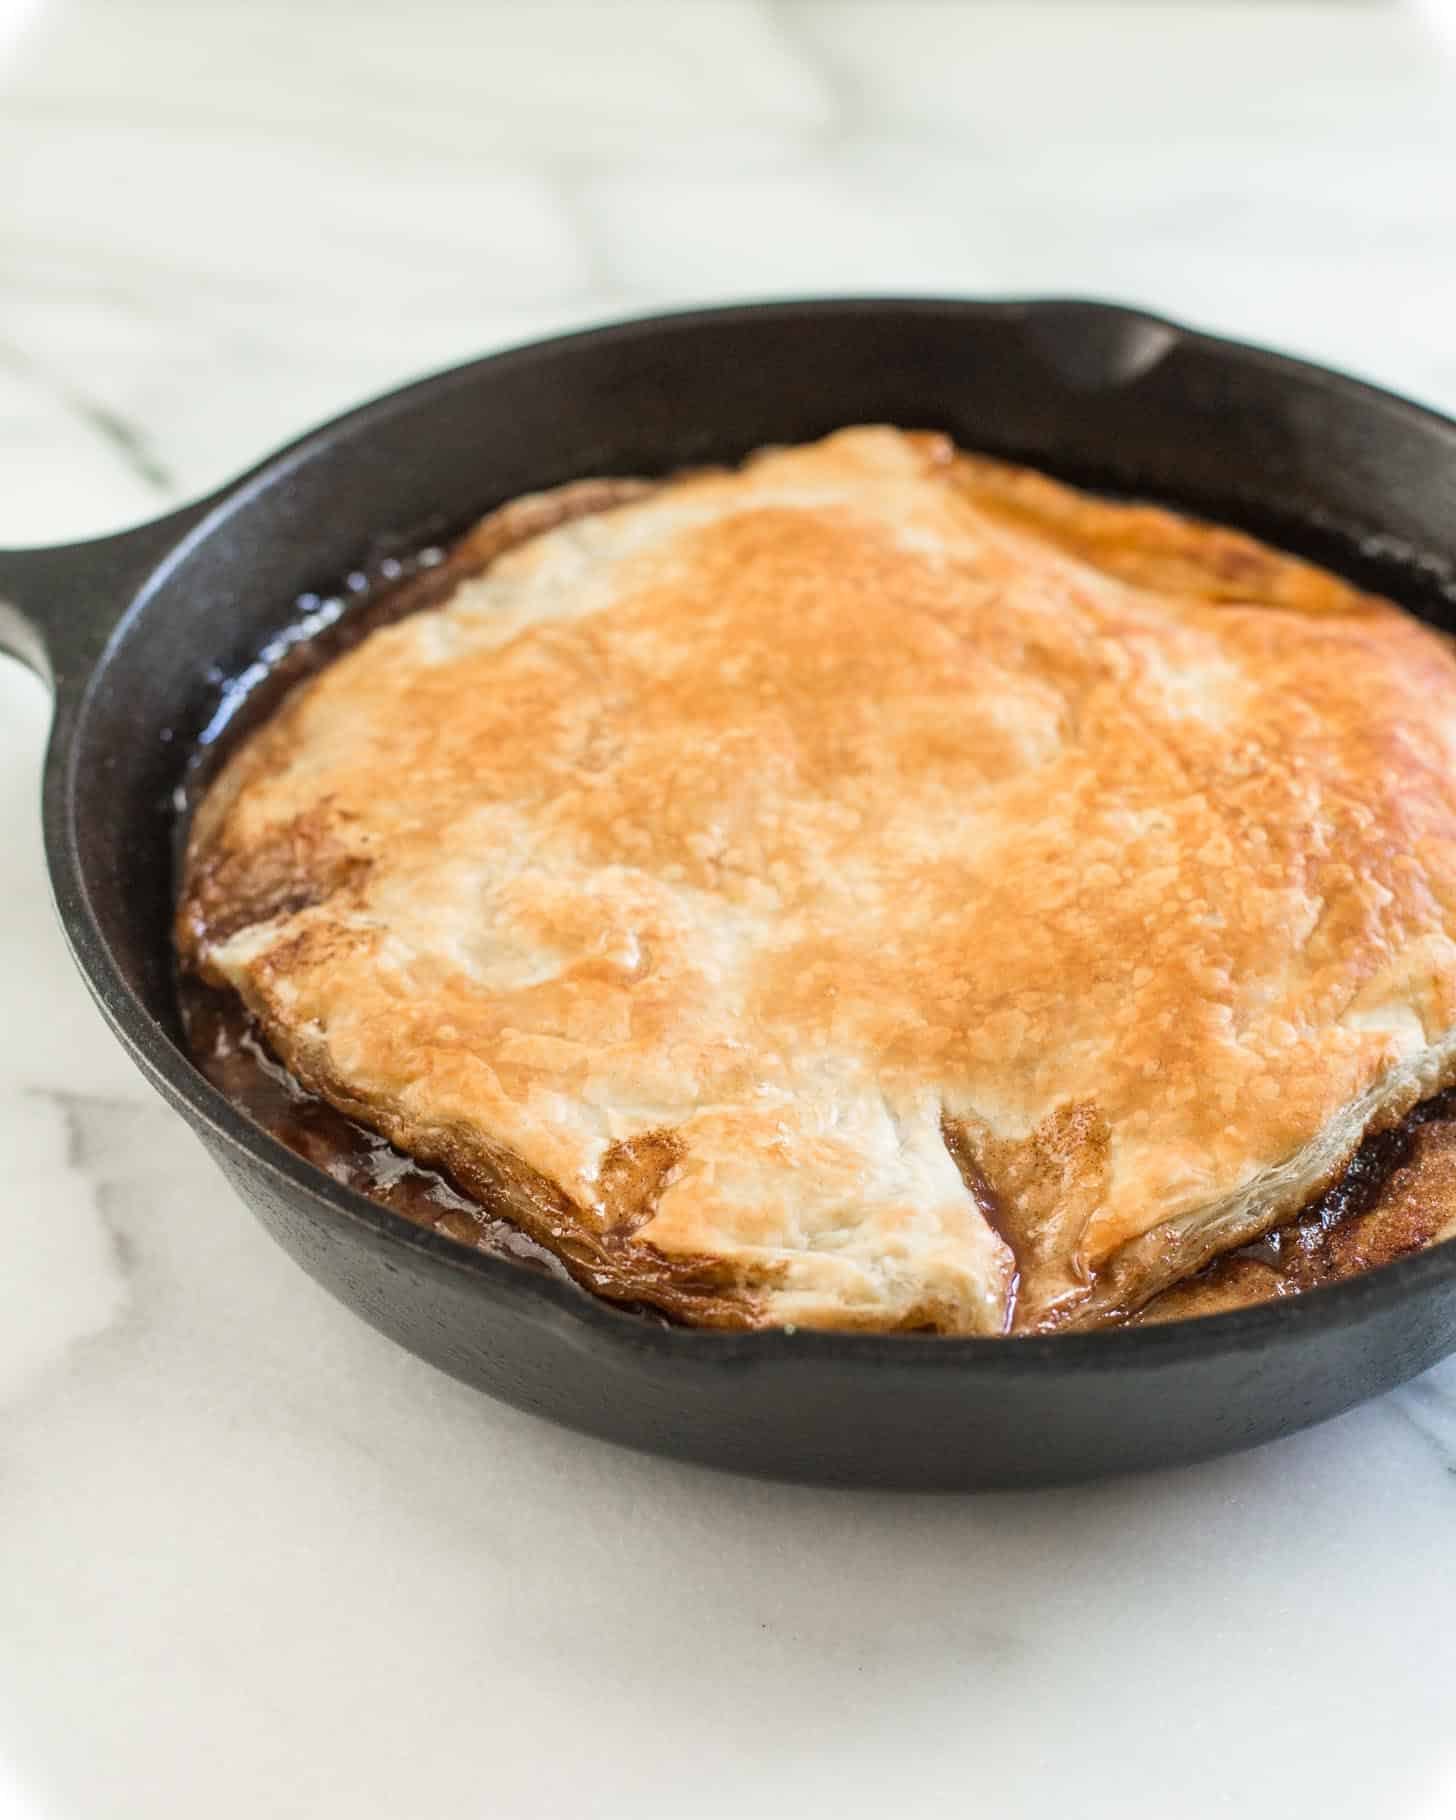 pastry topped apple tart in a cast iron skillet